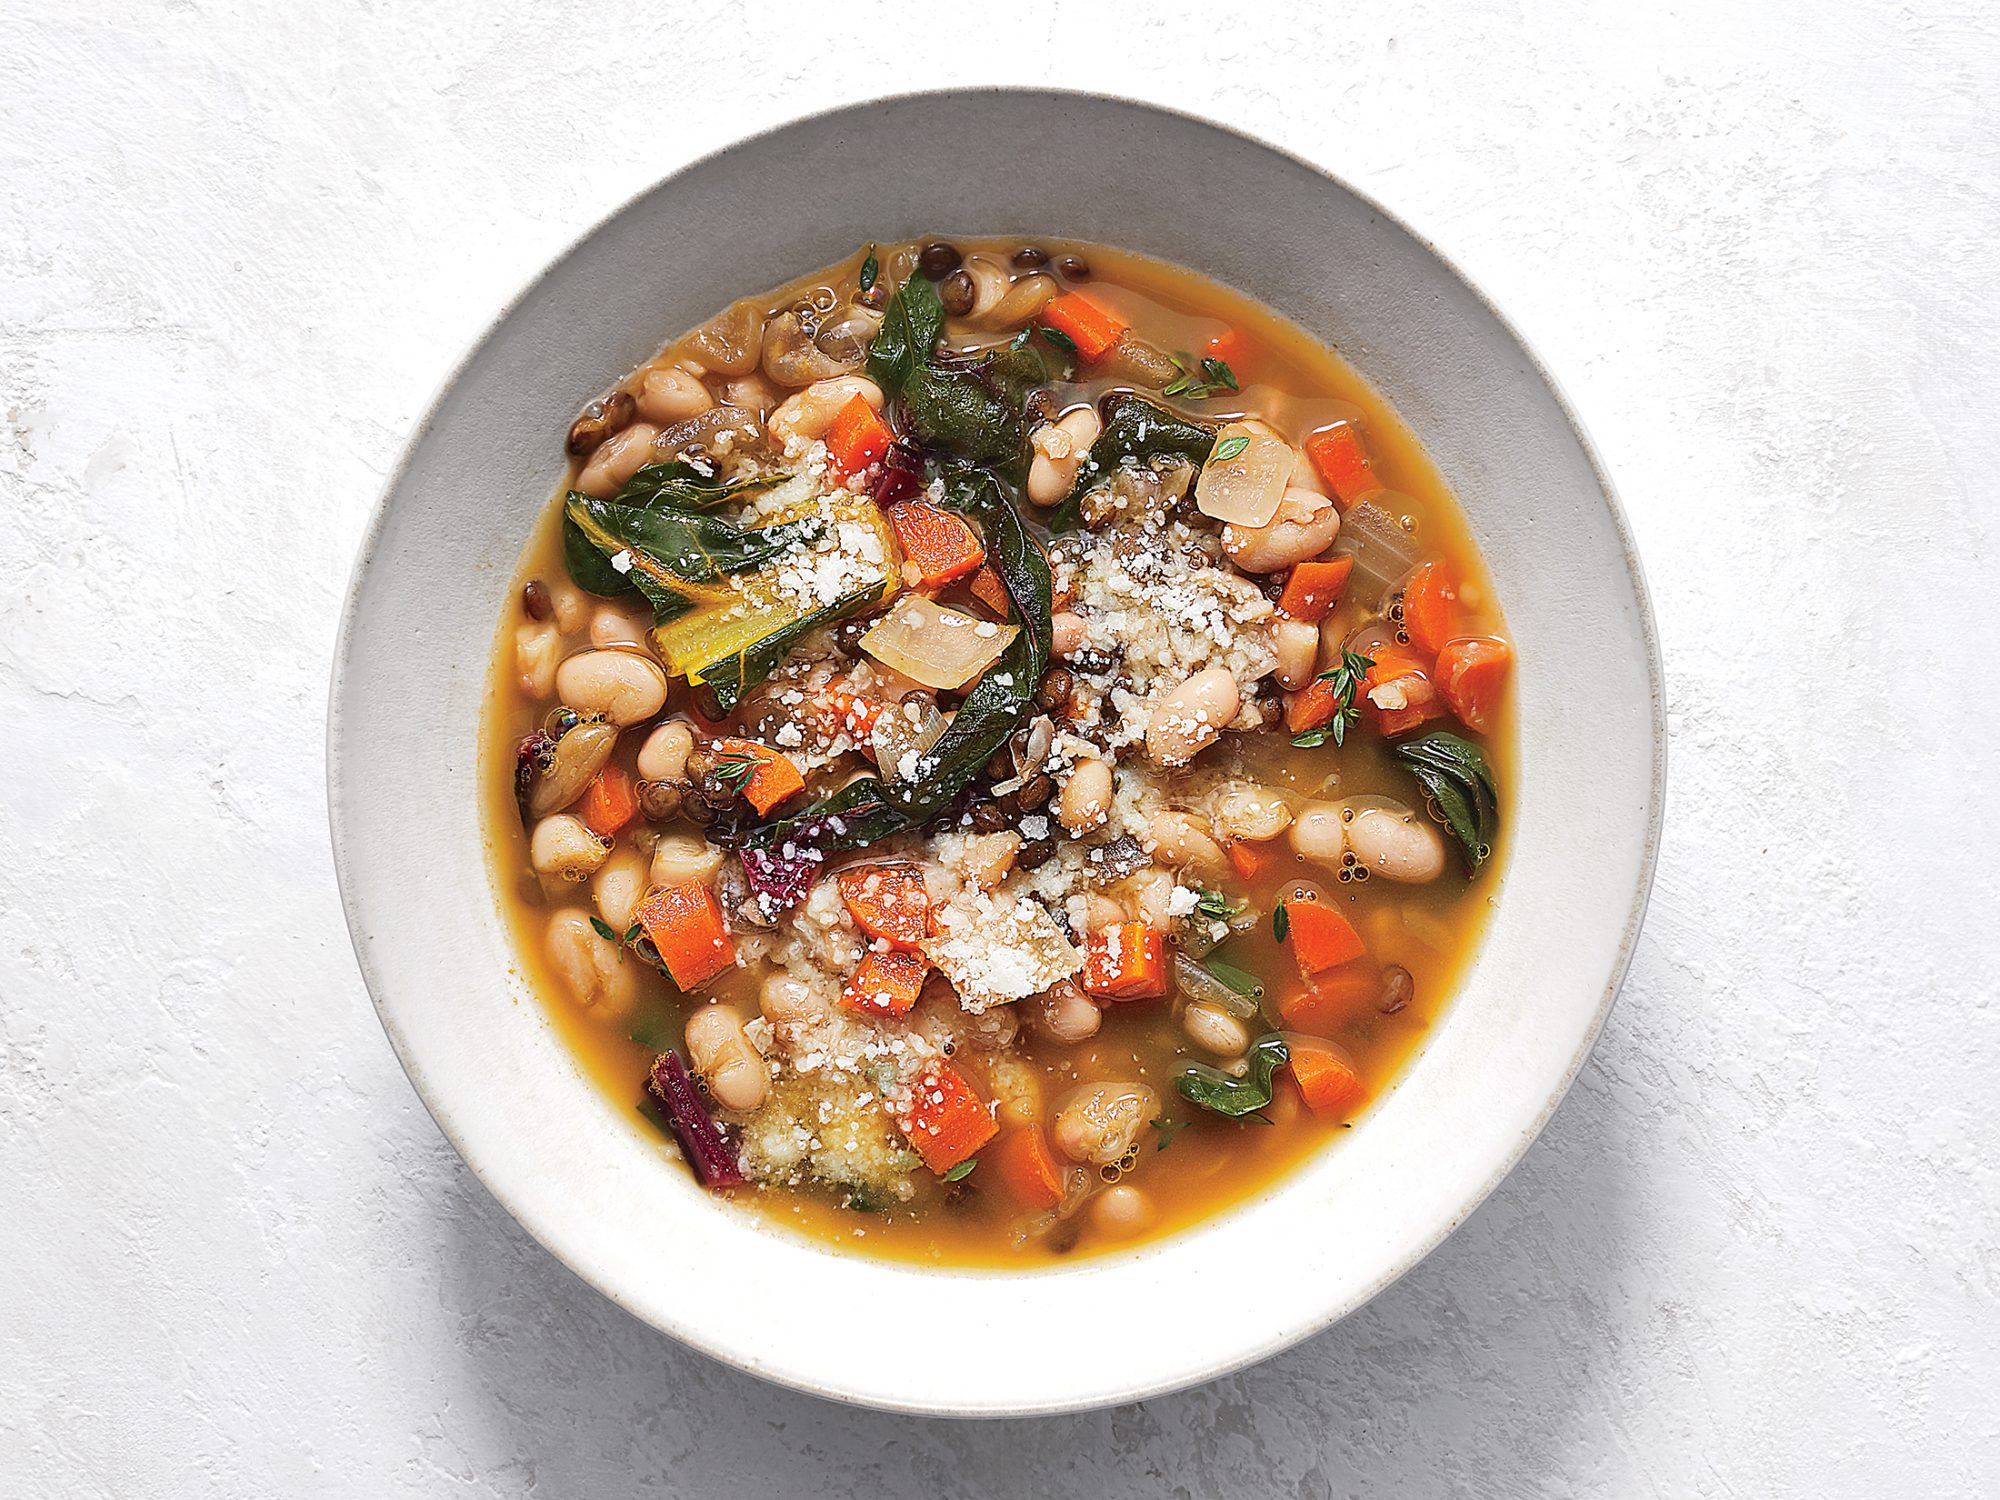 Tuscan White Bean and Lentil Soup